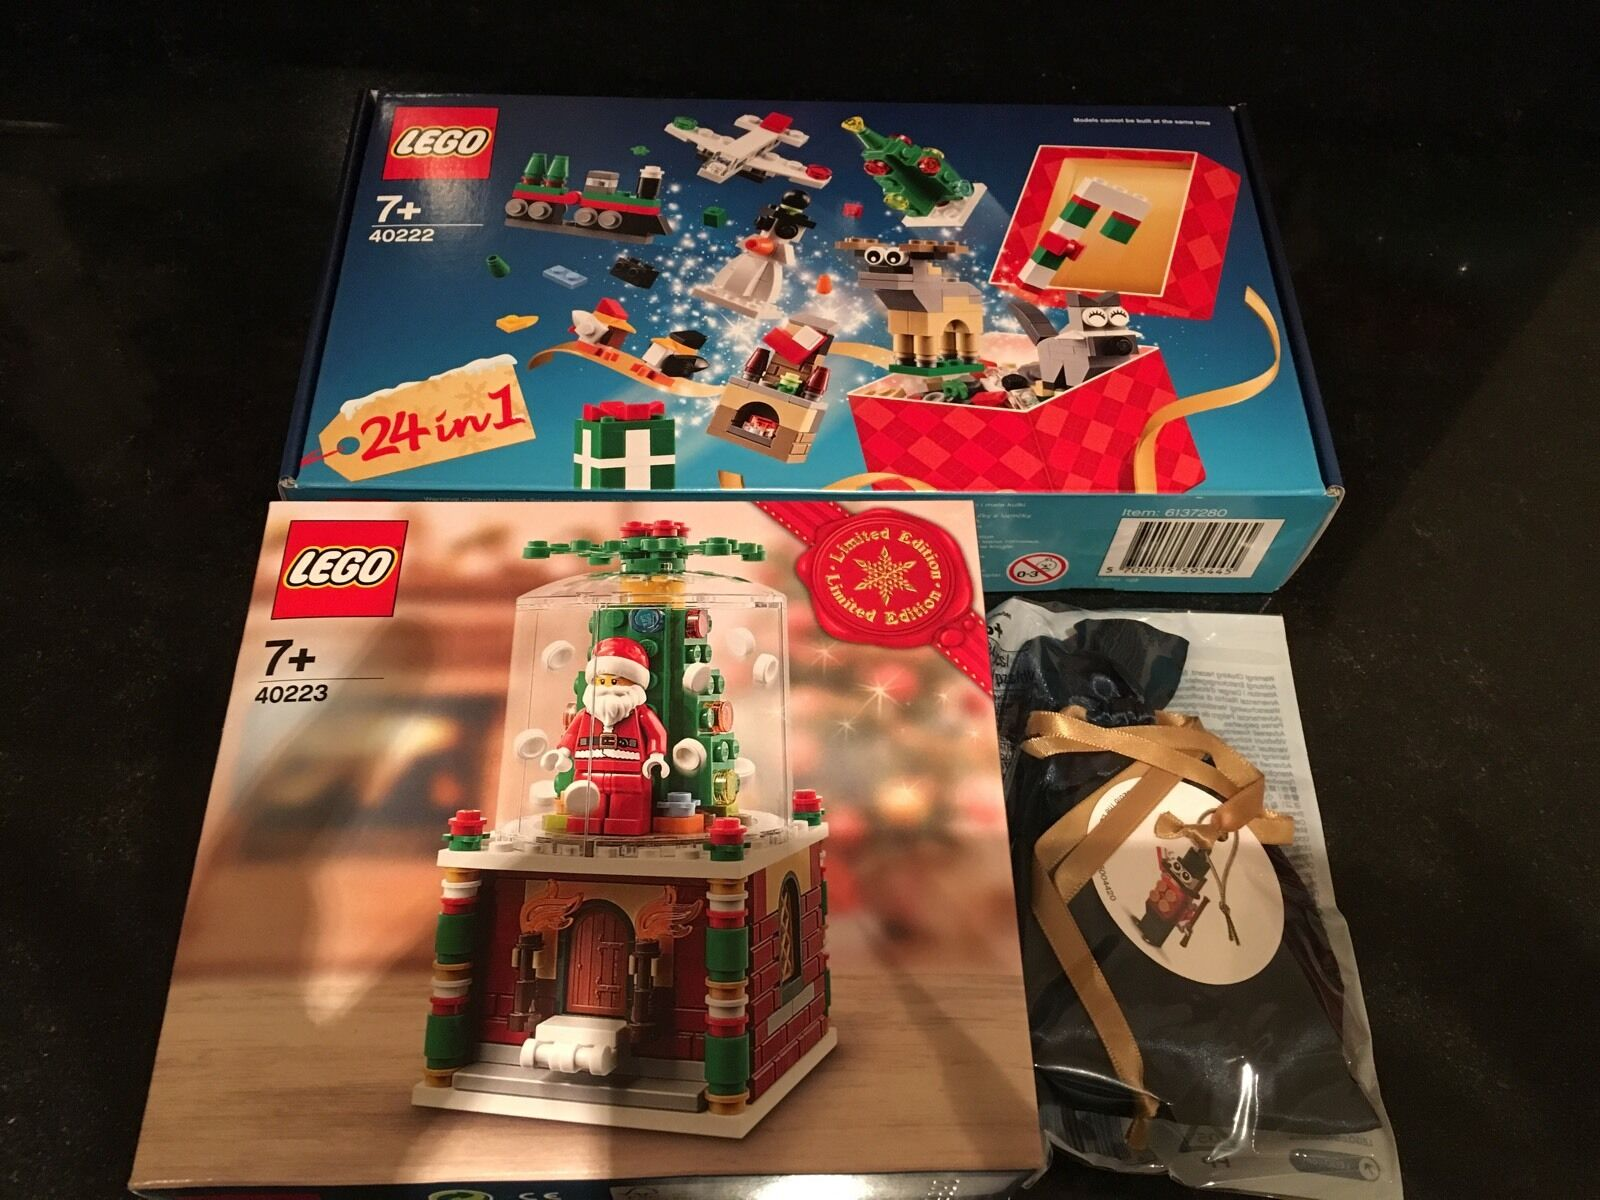 LEGO Christmas Set 24-in-1 (40222) Snow Globe (40223) Toy Soldier (5004420) Xmas